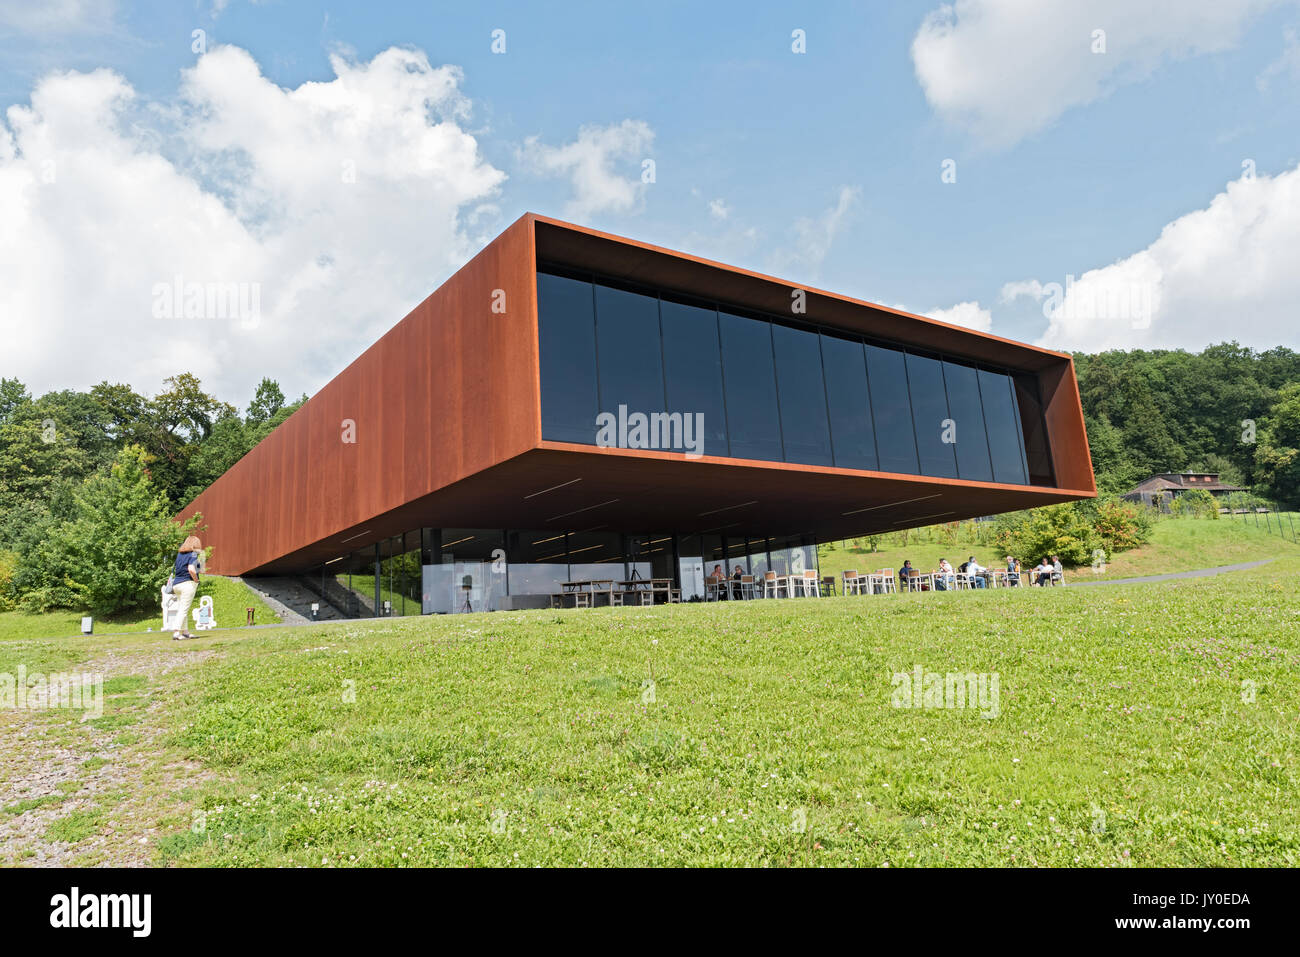 Museum and Archaeological Park Glauberg, Hesse, Germany - Stock Image